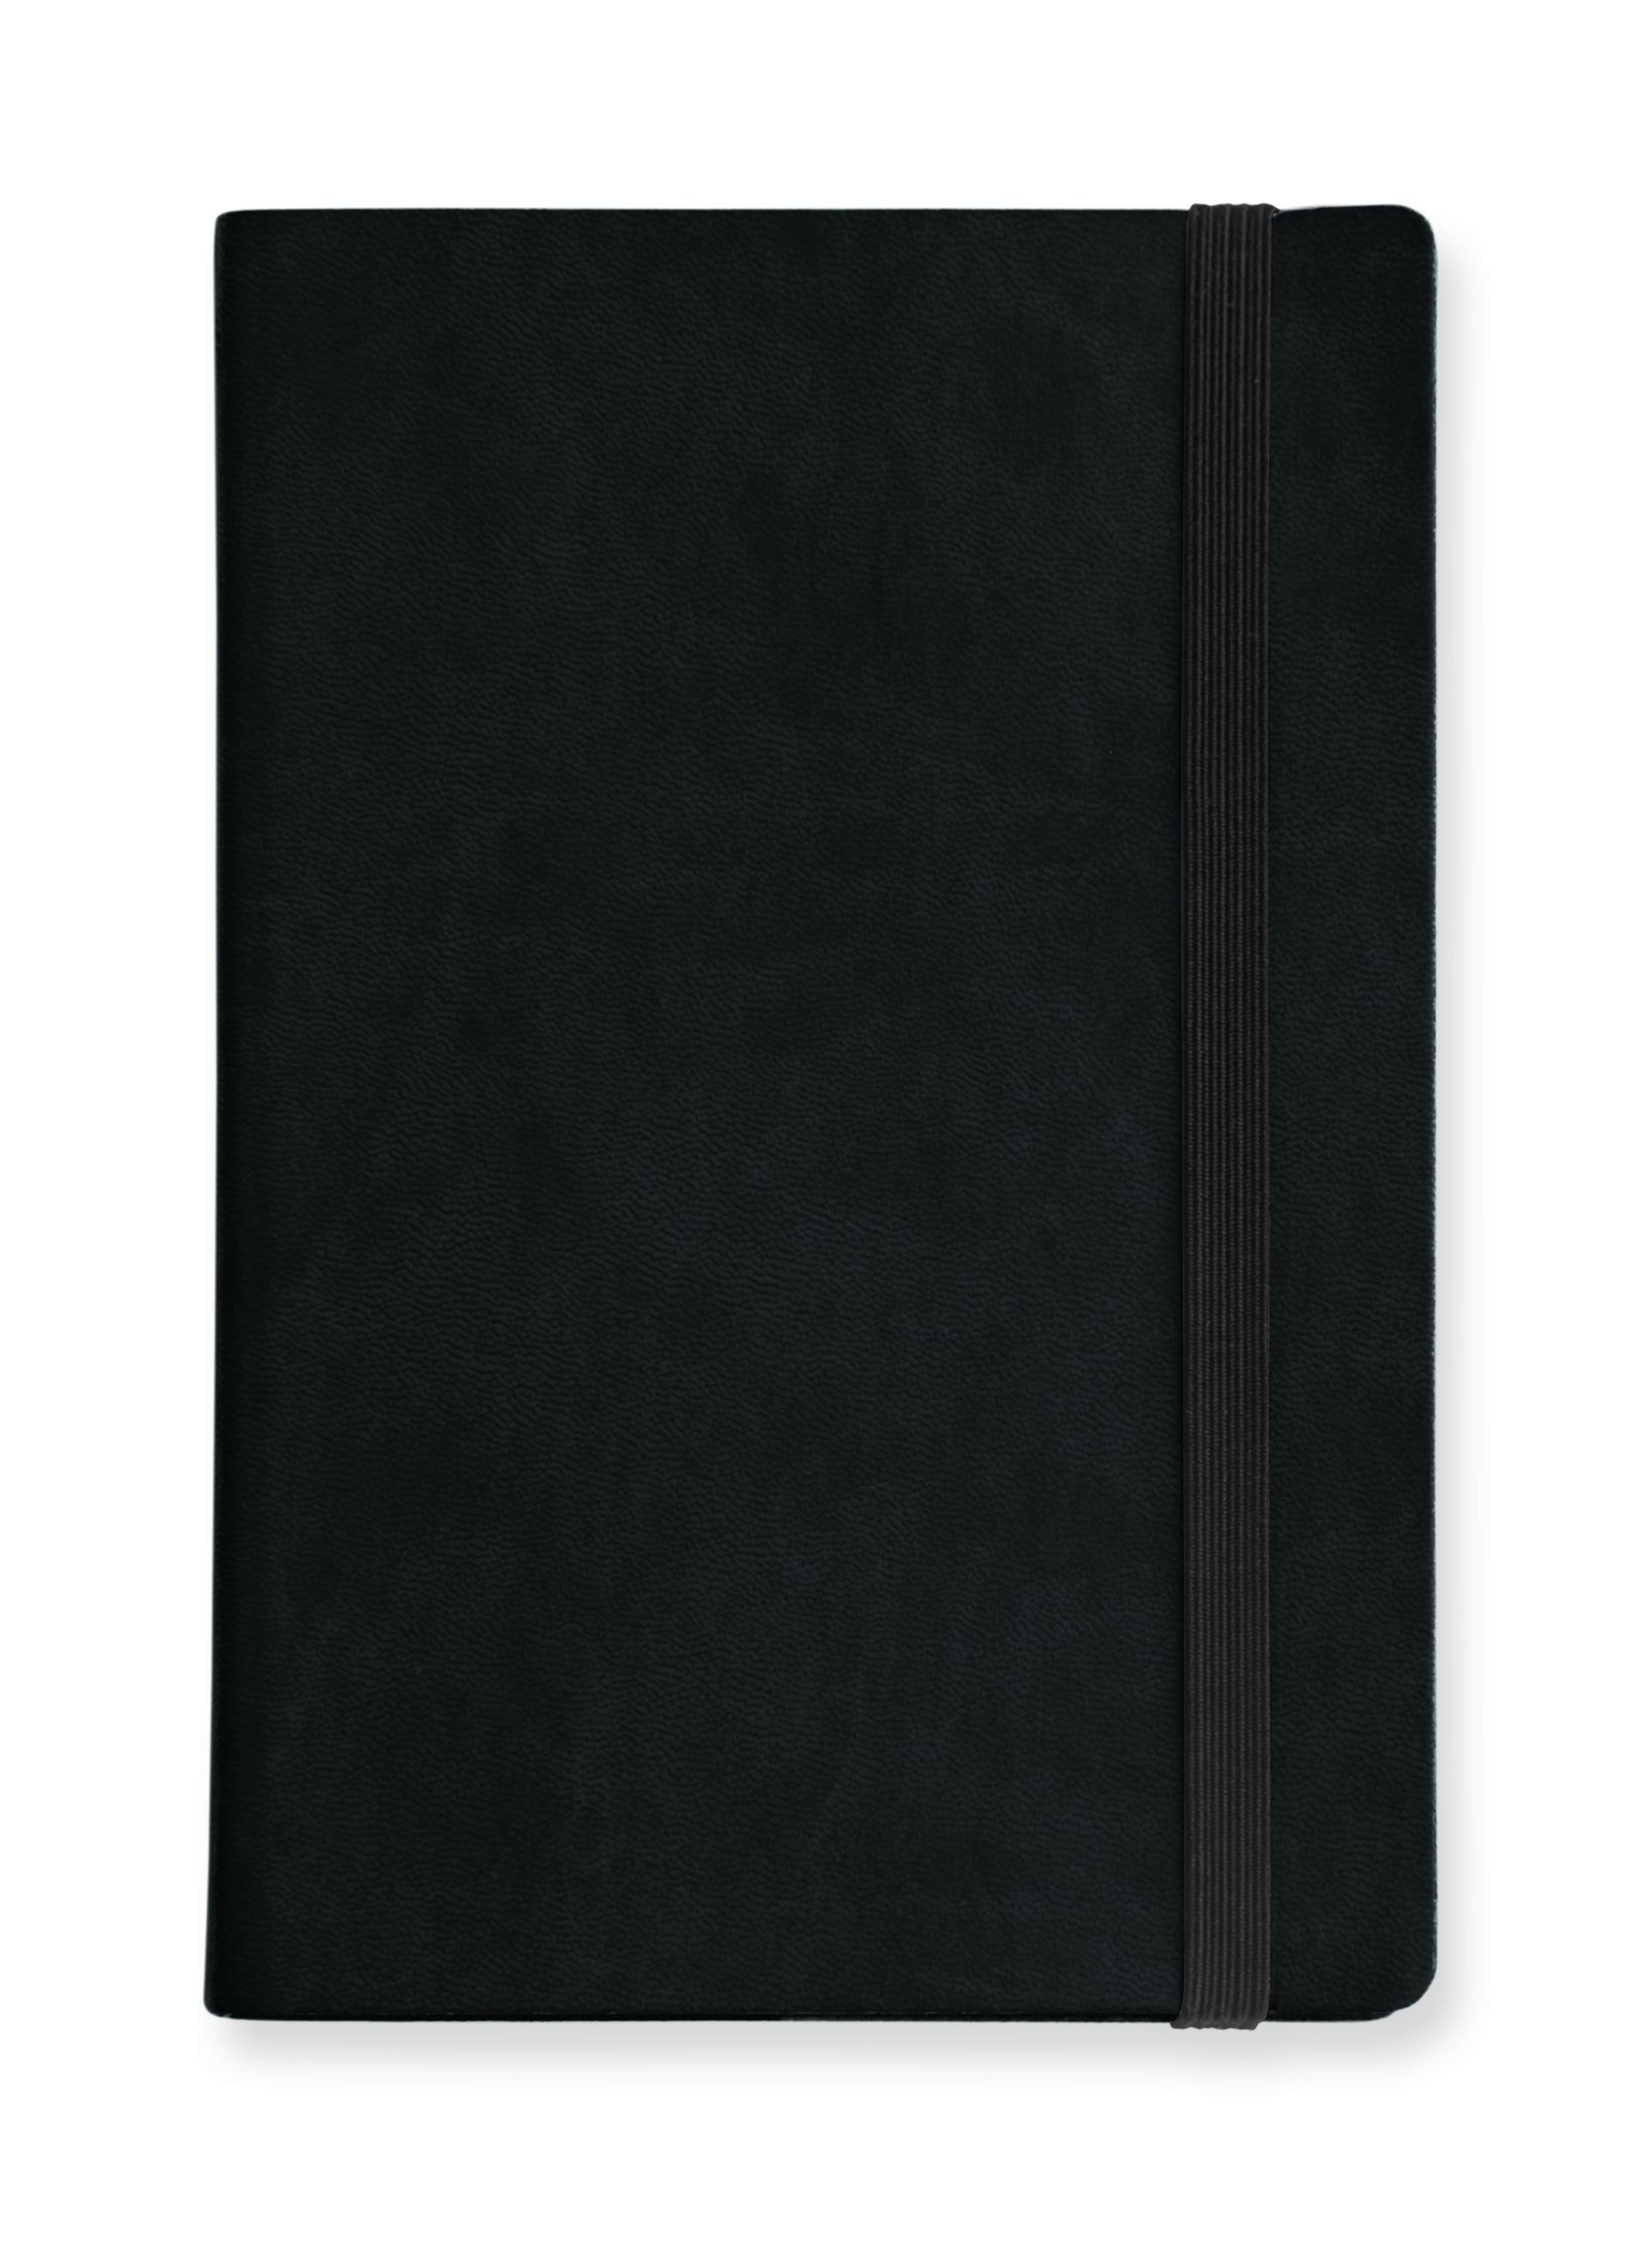 Image of My Notebook Small a pagine bianche. Nero